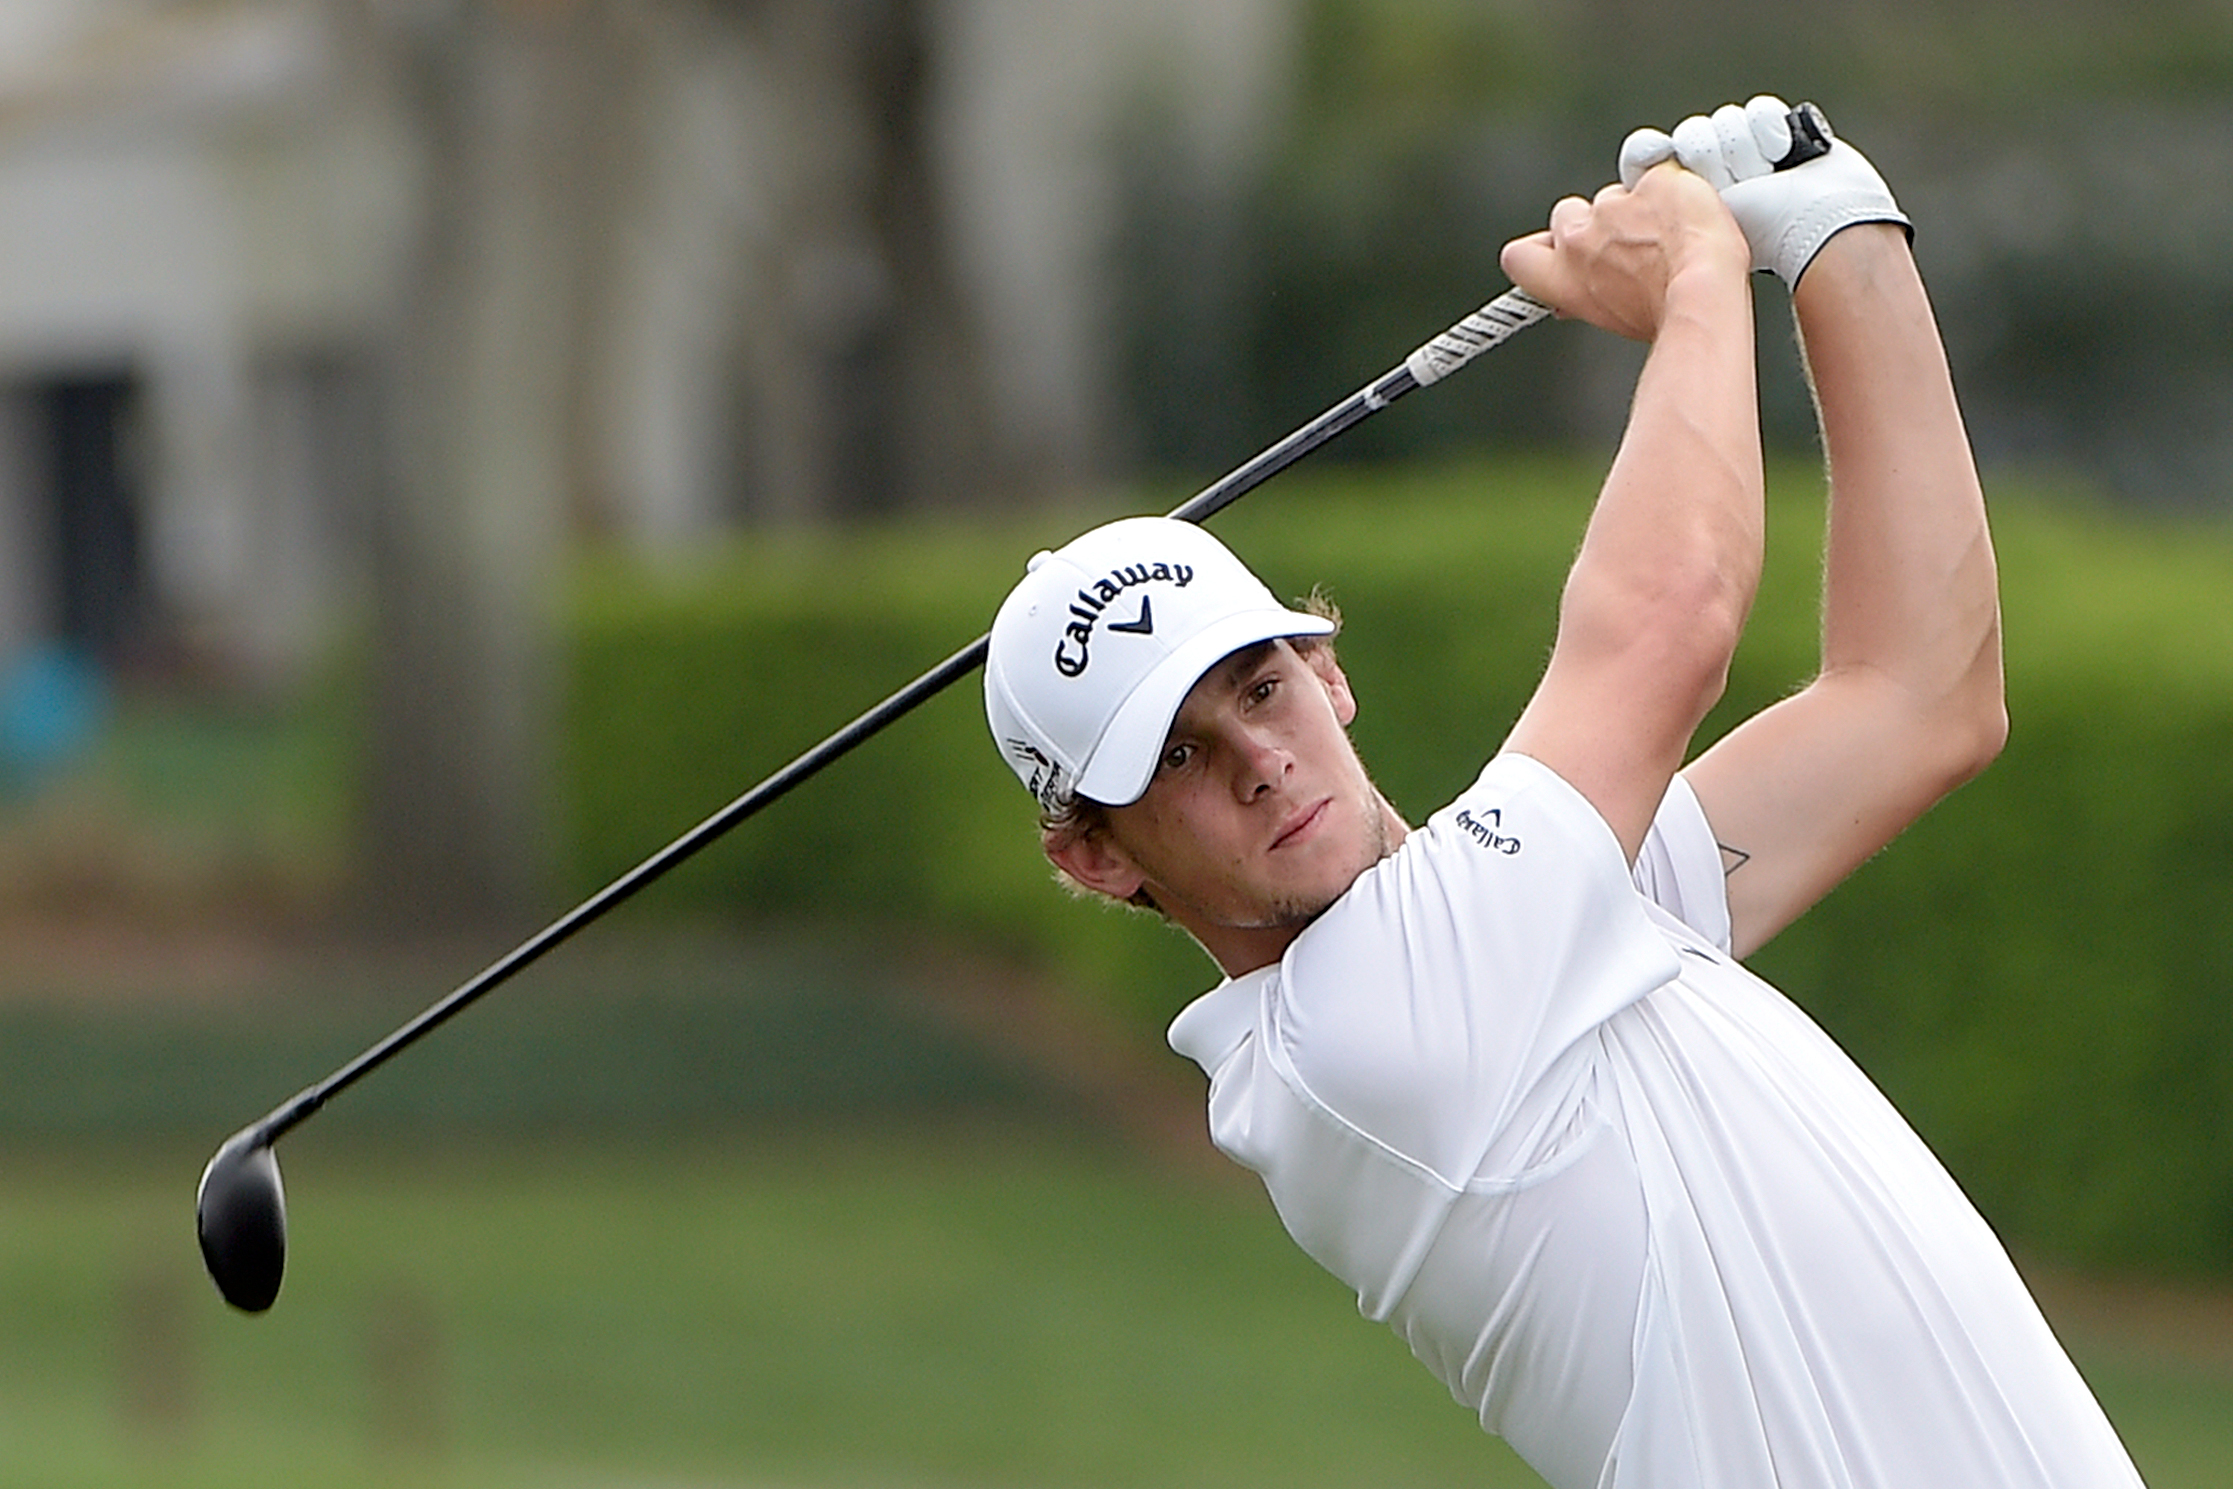 FILE - In this Thursday, March 17, 2016, file photo Thomas Pieters, of Belgium, tees off on the 18th hole during the first round of the Arnold Palmer Invitational golf tournament in Orlando, Fla. There is one advantage of coming from a country with very l